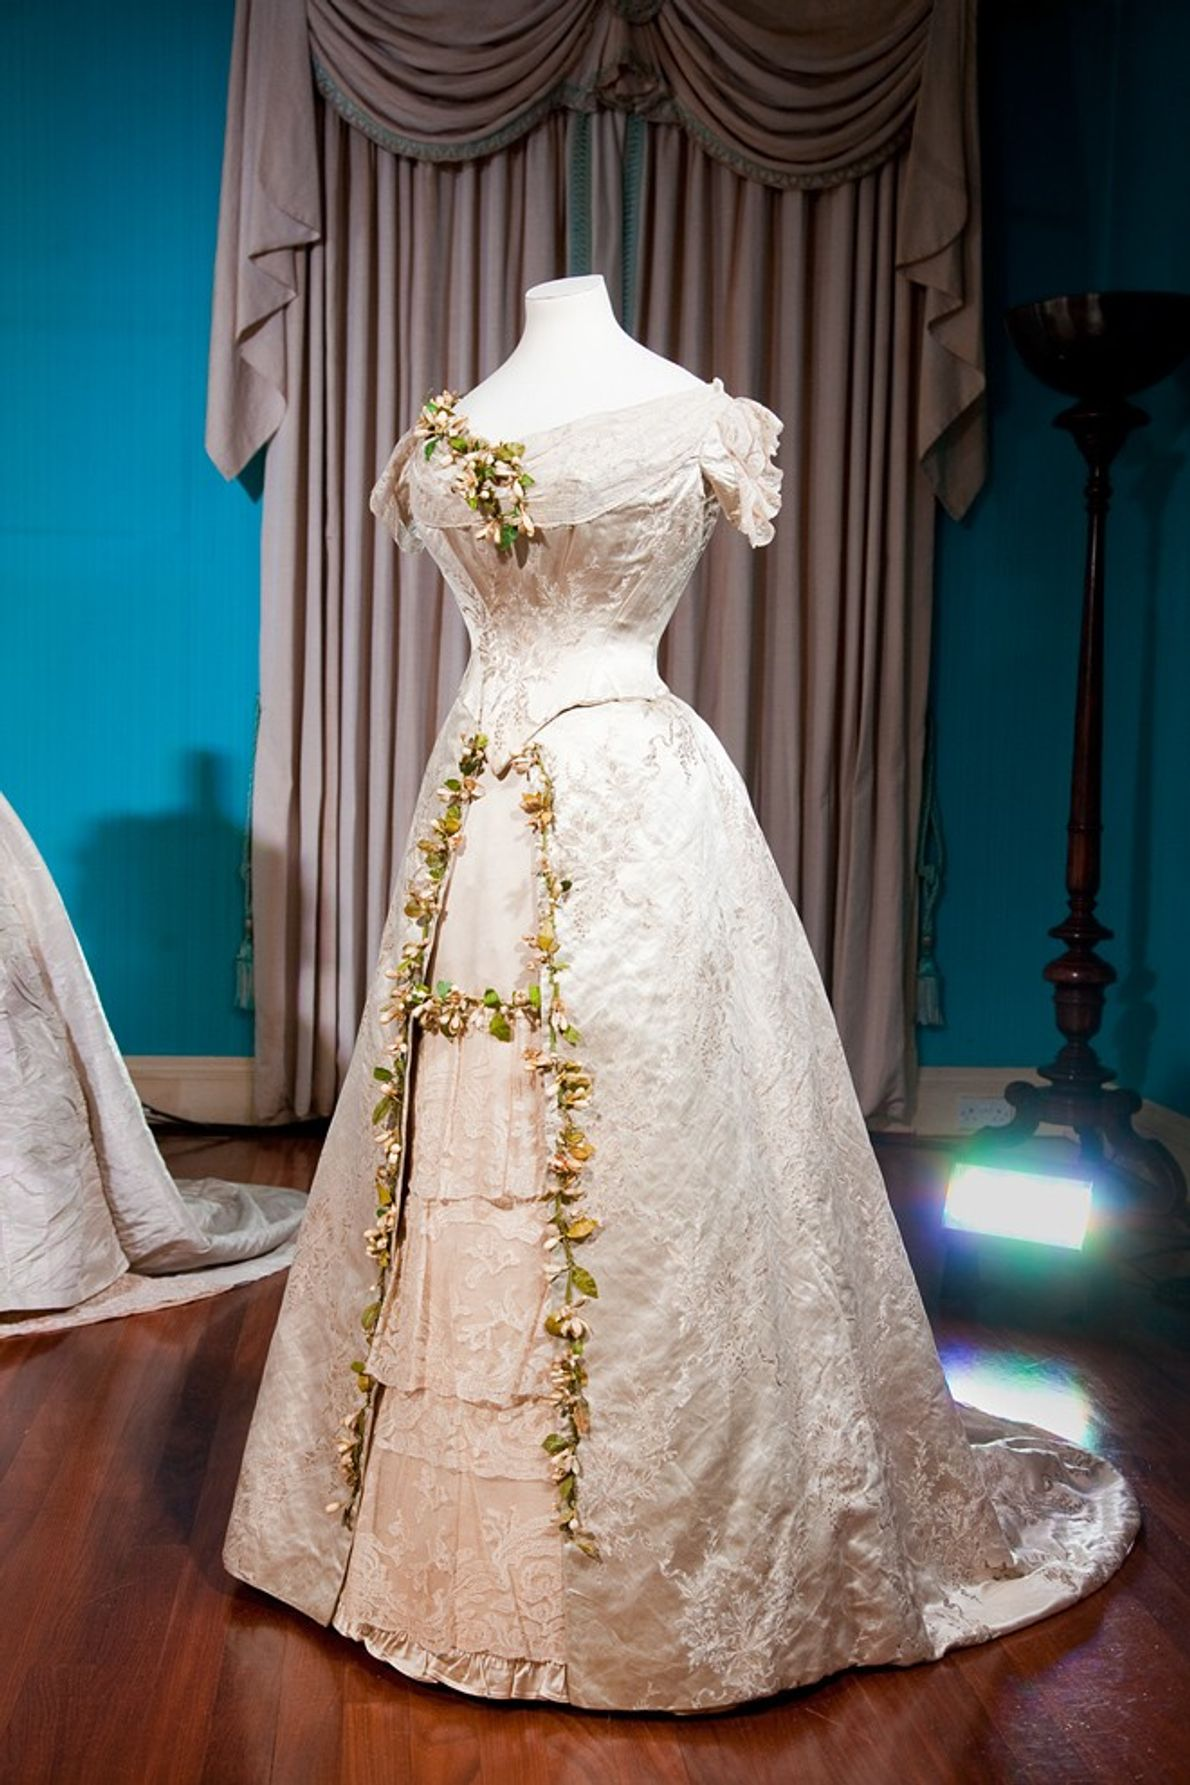 Worn for her wedding to the future King George V in 1893, Princess Mary of Teck's ...